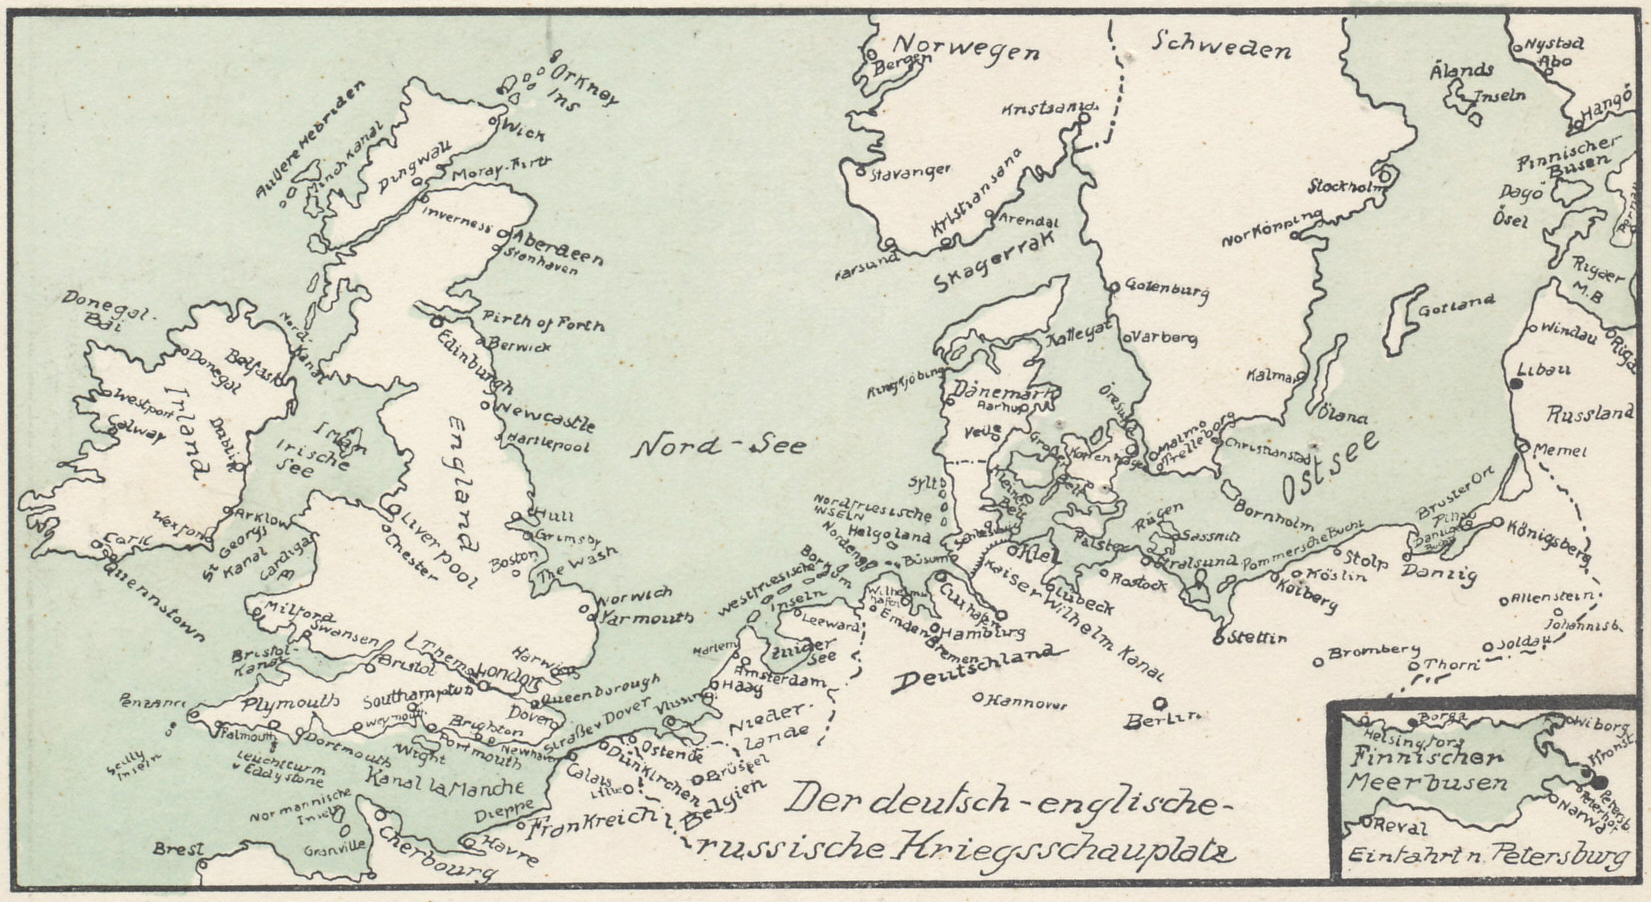 Map of the North and Baltic Seas from a folding postcard of five battlefronts: the Western and Eastern Fronts; North and Baltic Seas, Mediterranean and Black Seas; and the Serbian-Montenegro Front.